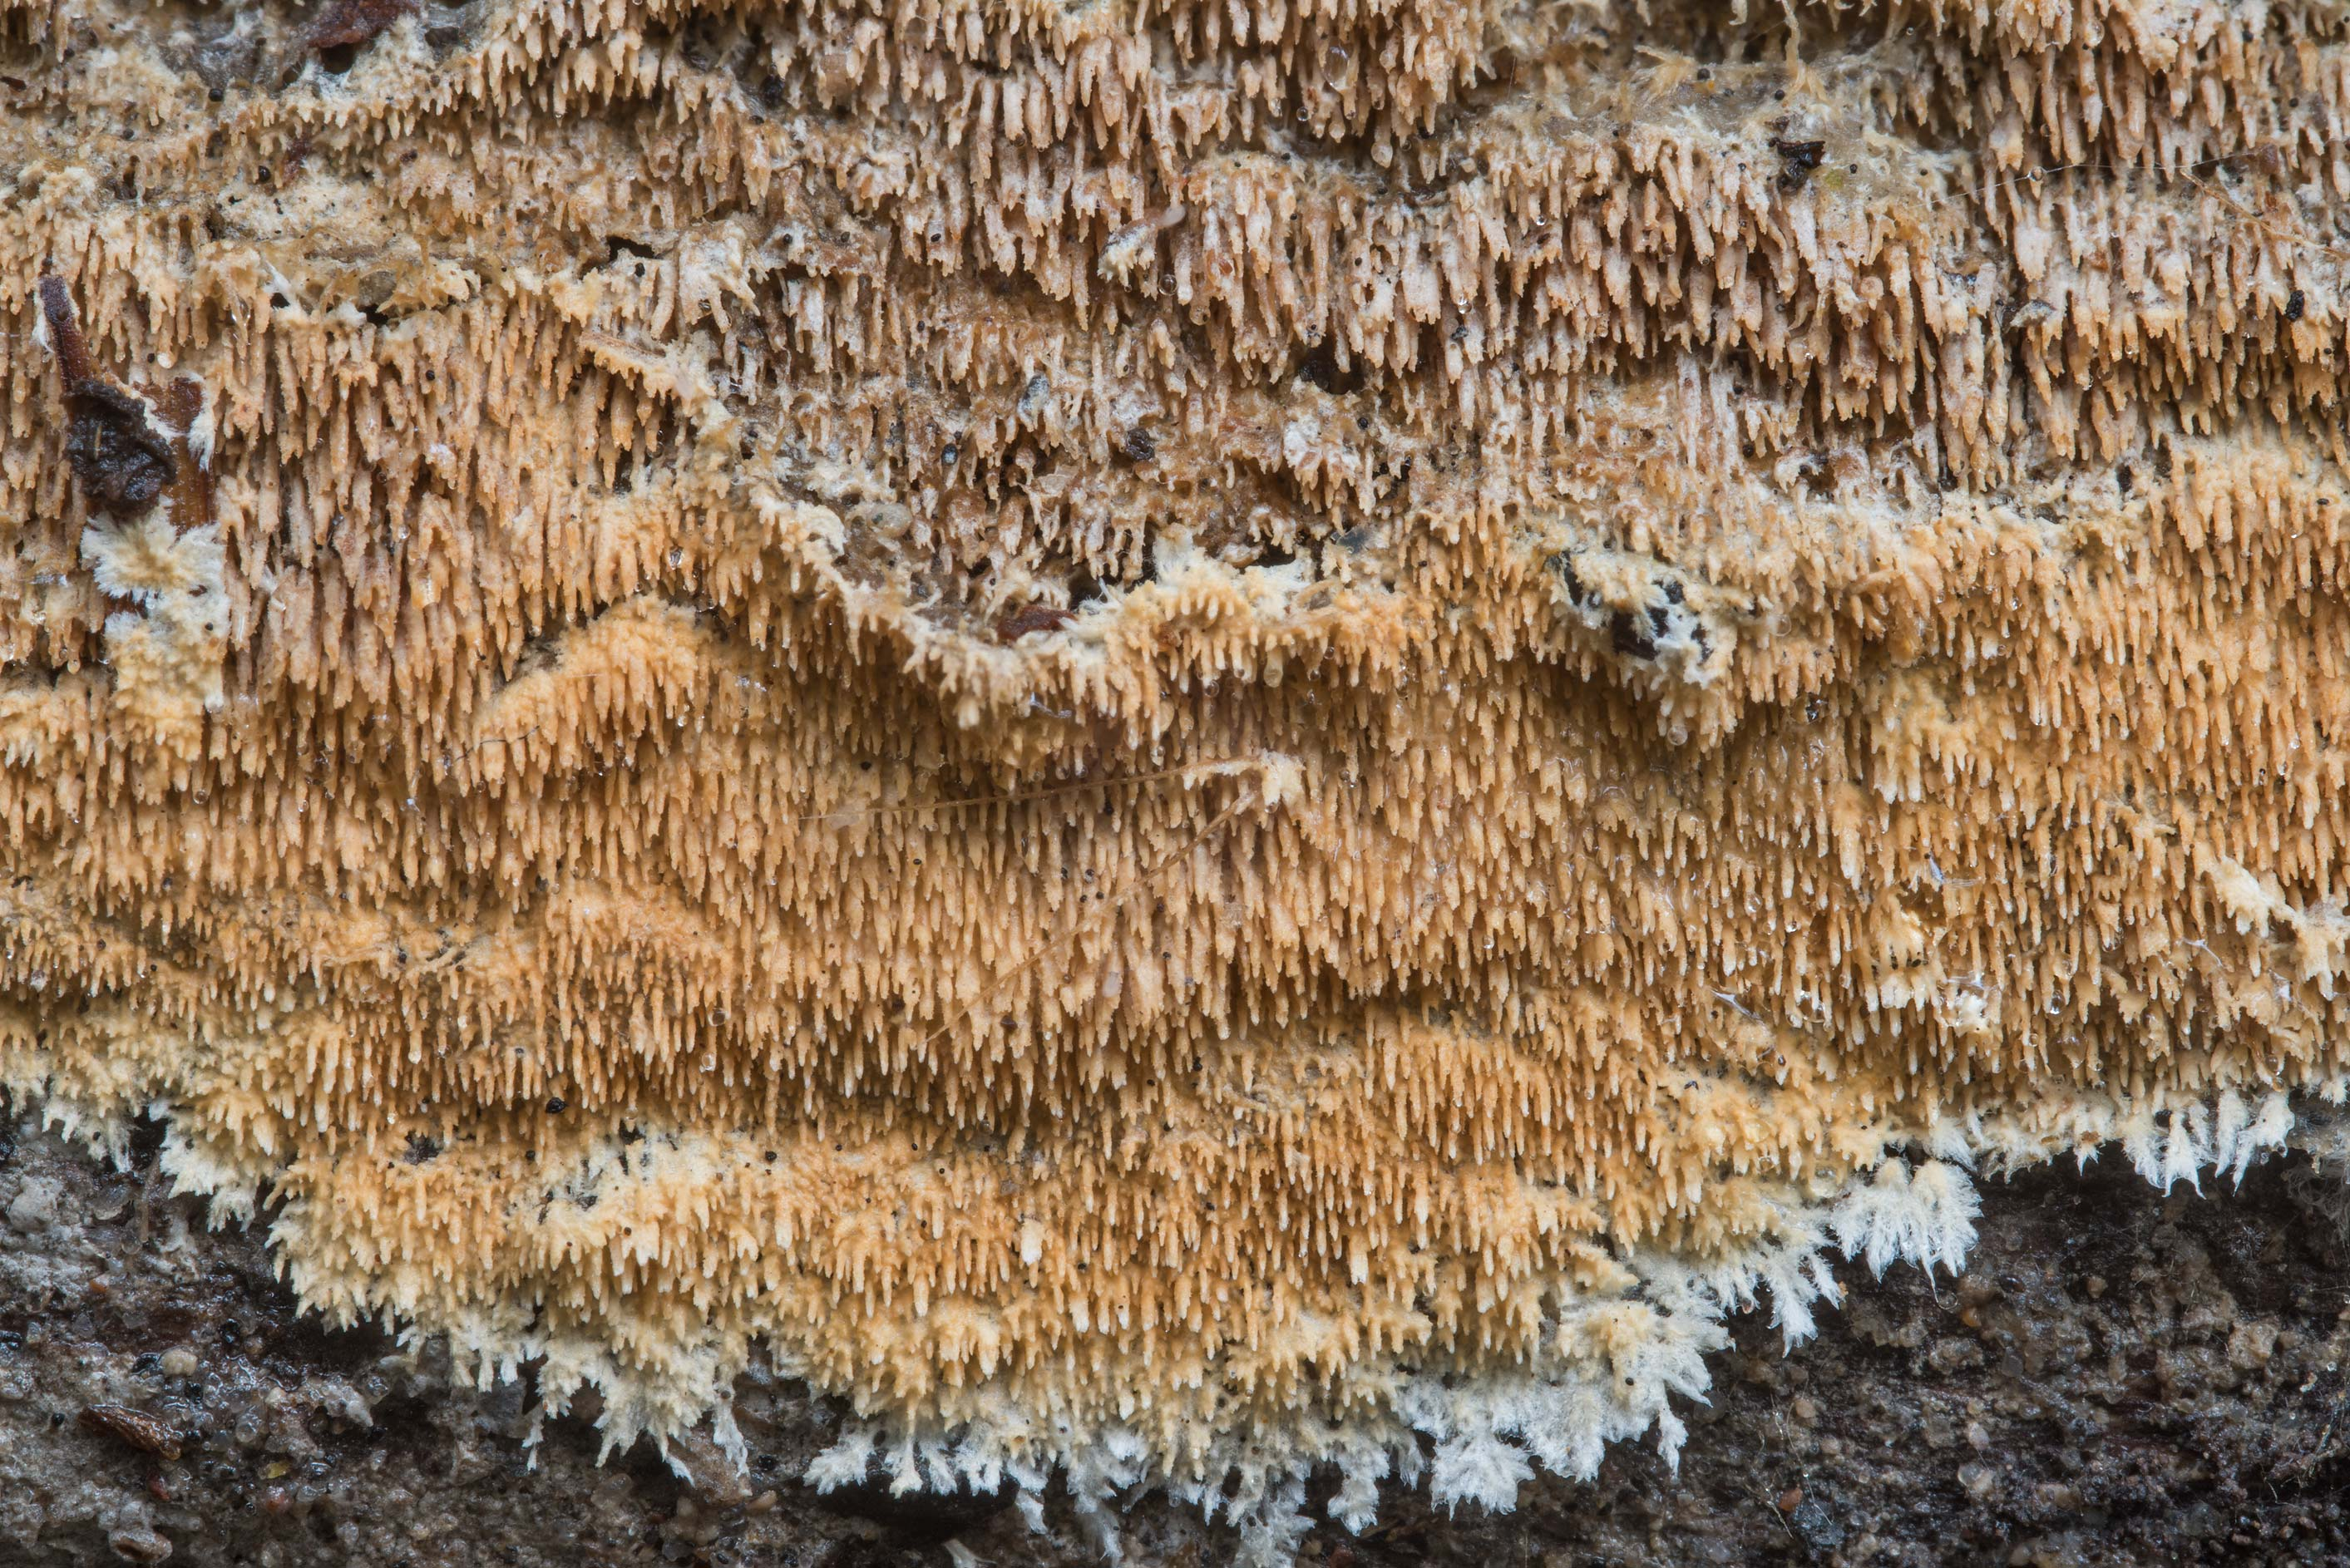 Brown hydnoid fungus on a log on Kiwanis Nature Trail. College Station, Texas